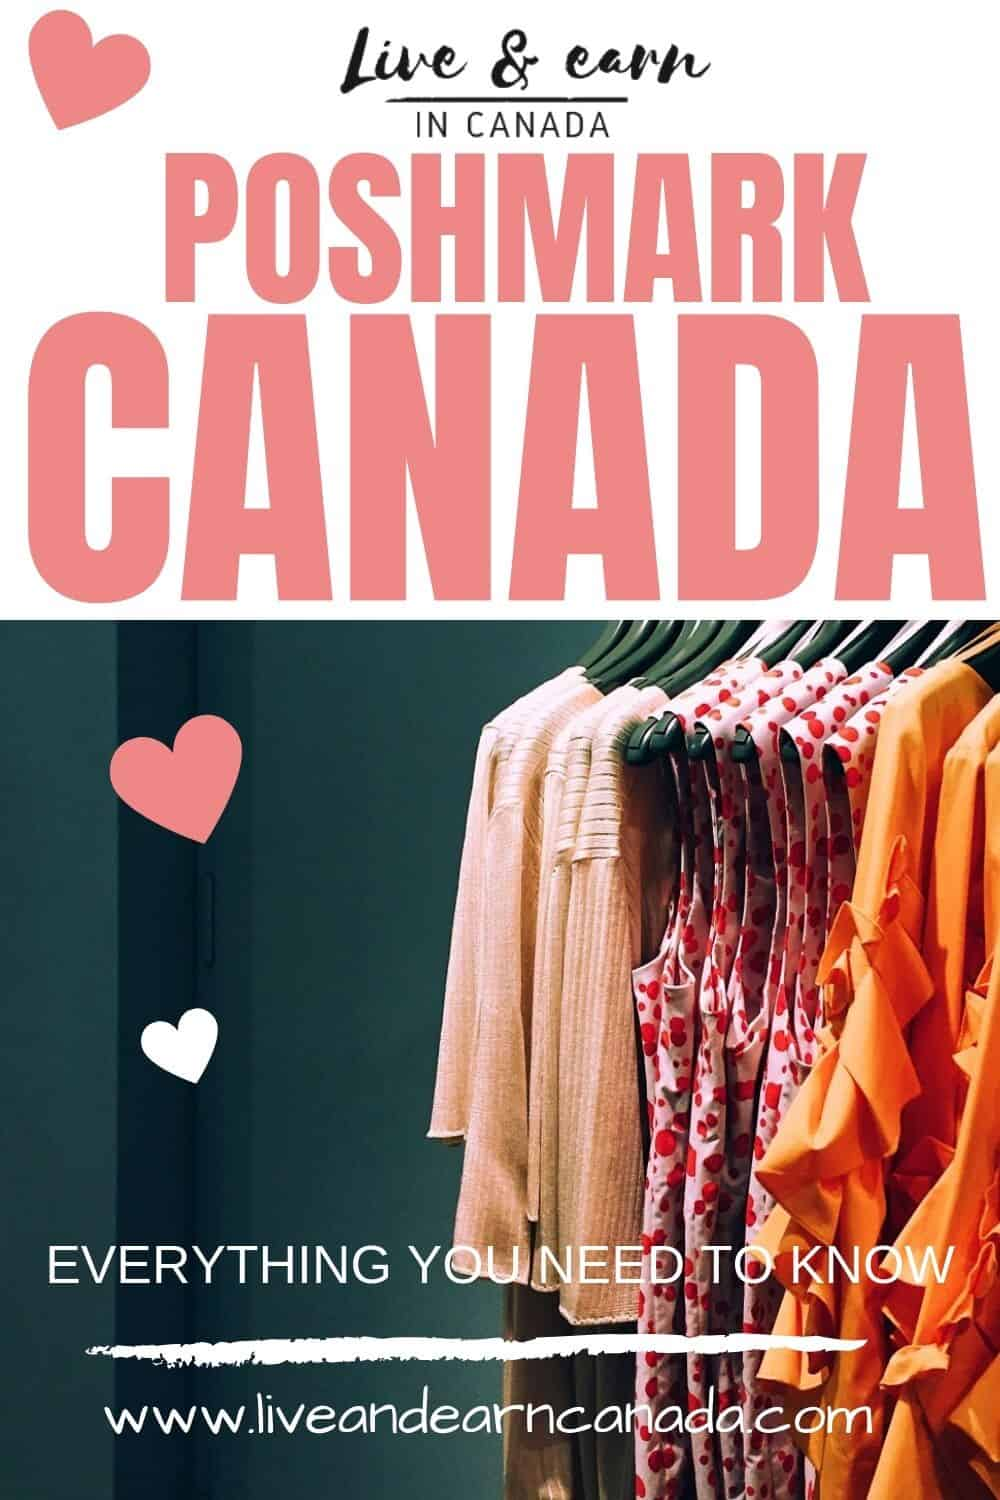 Poshmark Canada, everything you need to know about this. Did you know that Poshmark is now in Canada? How to make make money using Poshmark in Canada #poshmark #poshmarkreview #poshmarkcanada / Poshmark Canada/ Poshmark Review